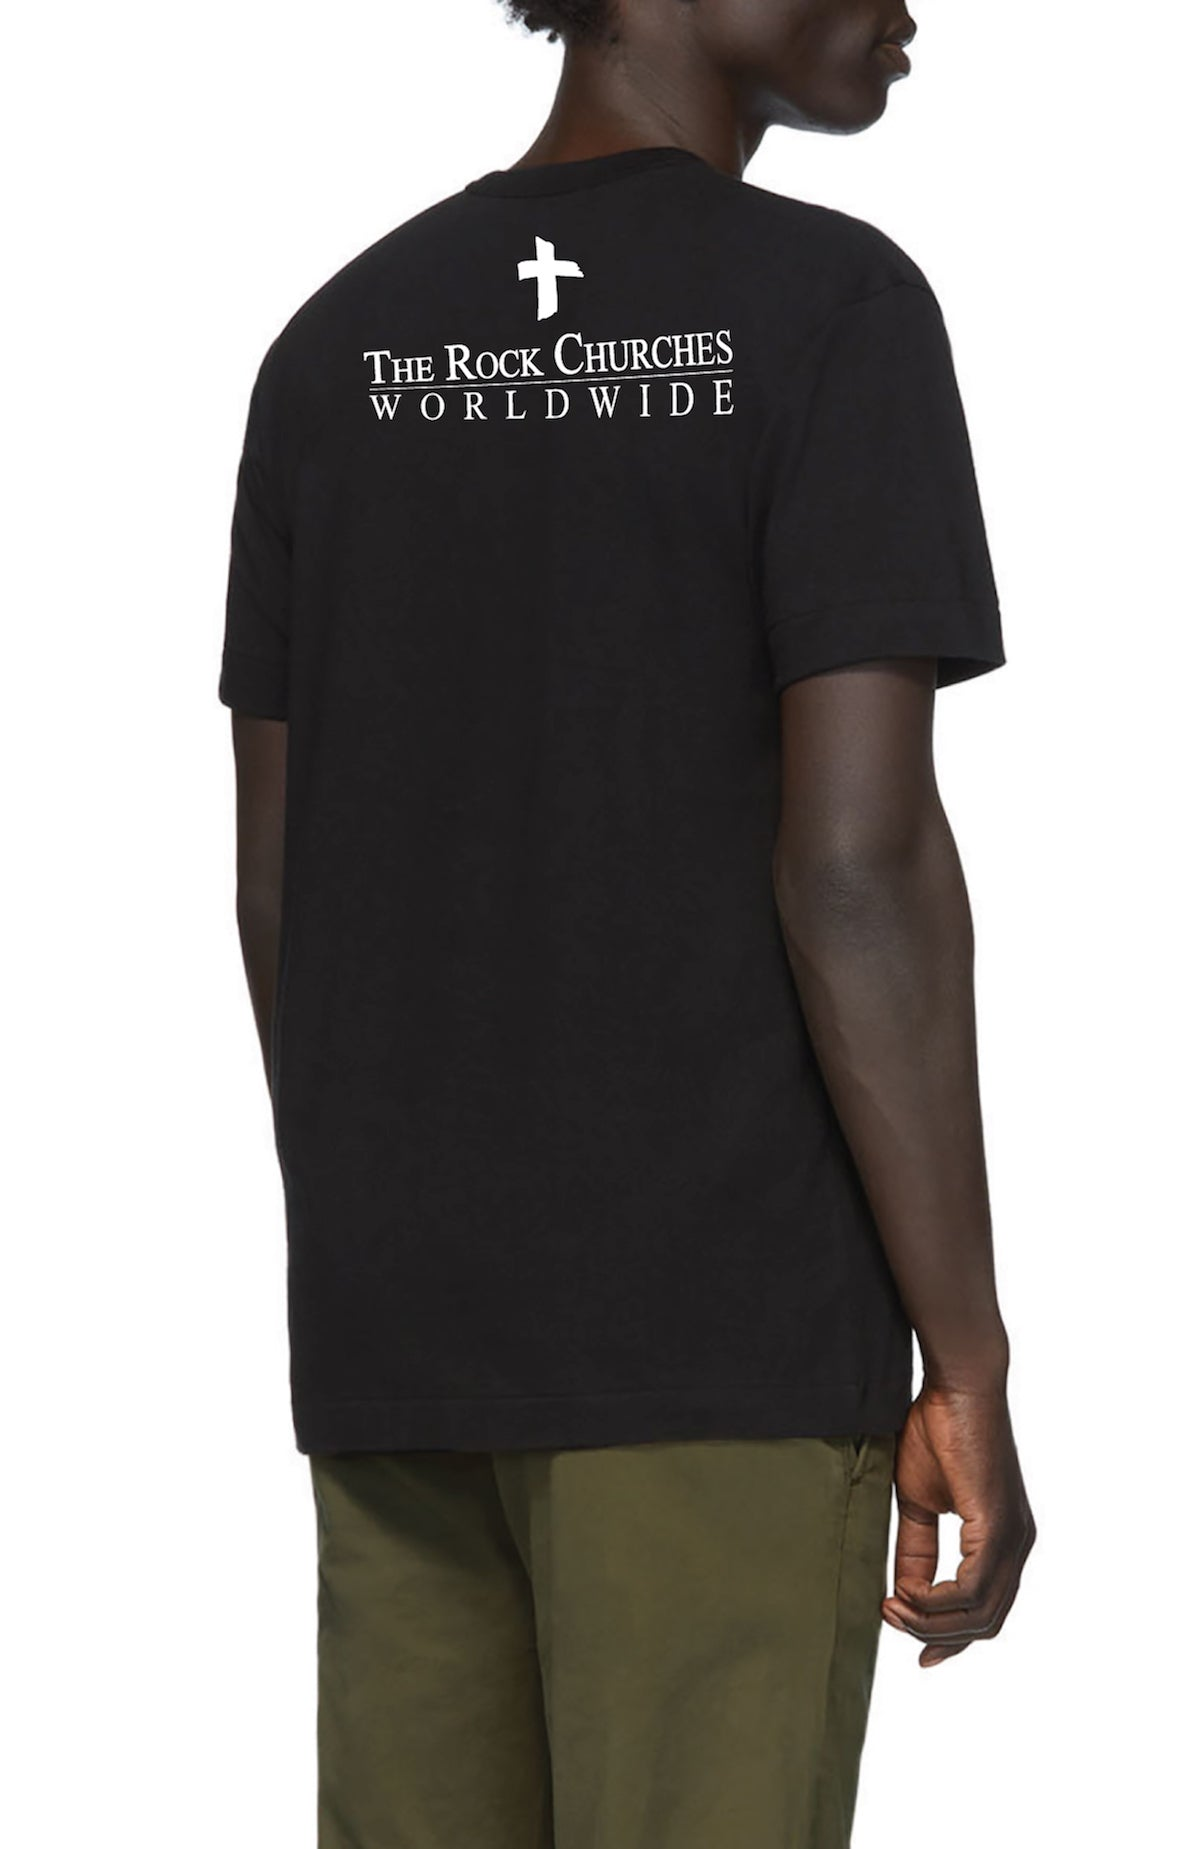 #BLM Rock Prayer Walk T-Shirt